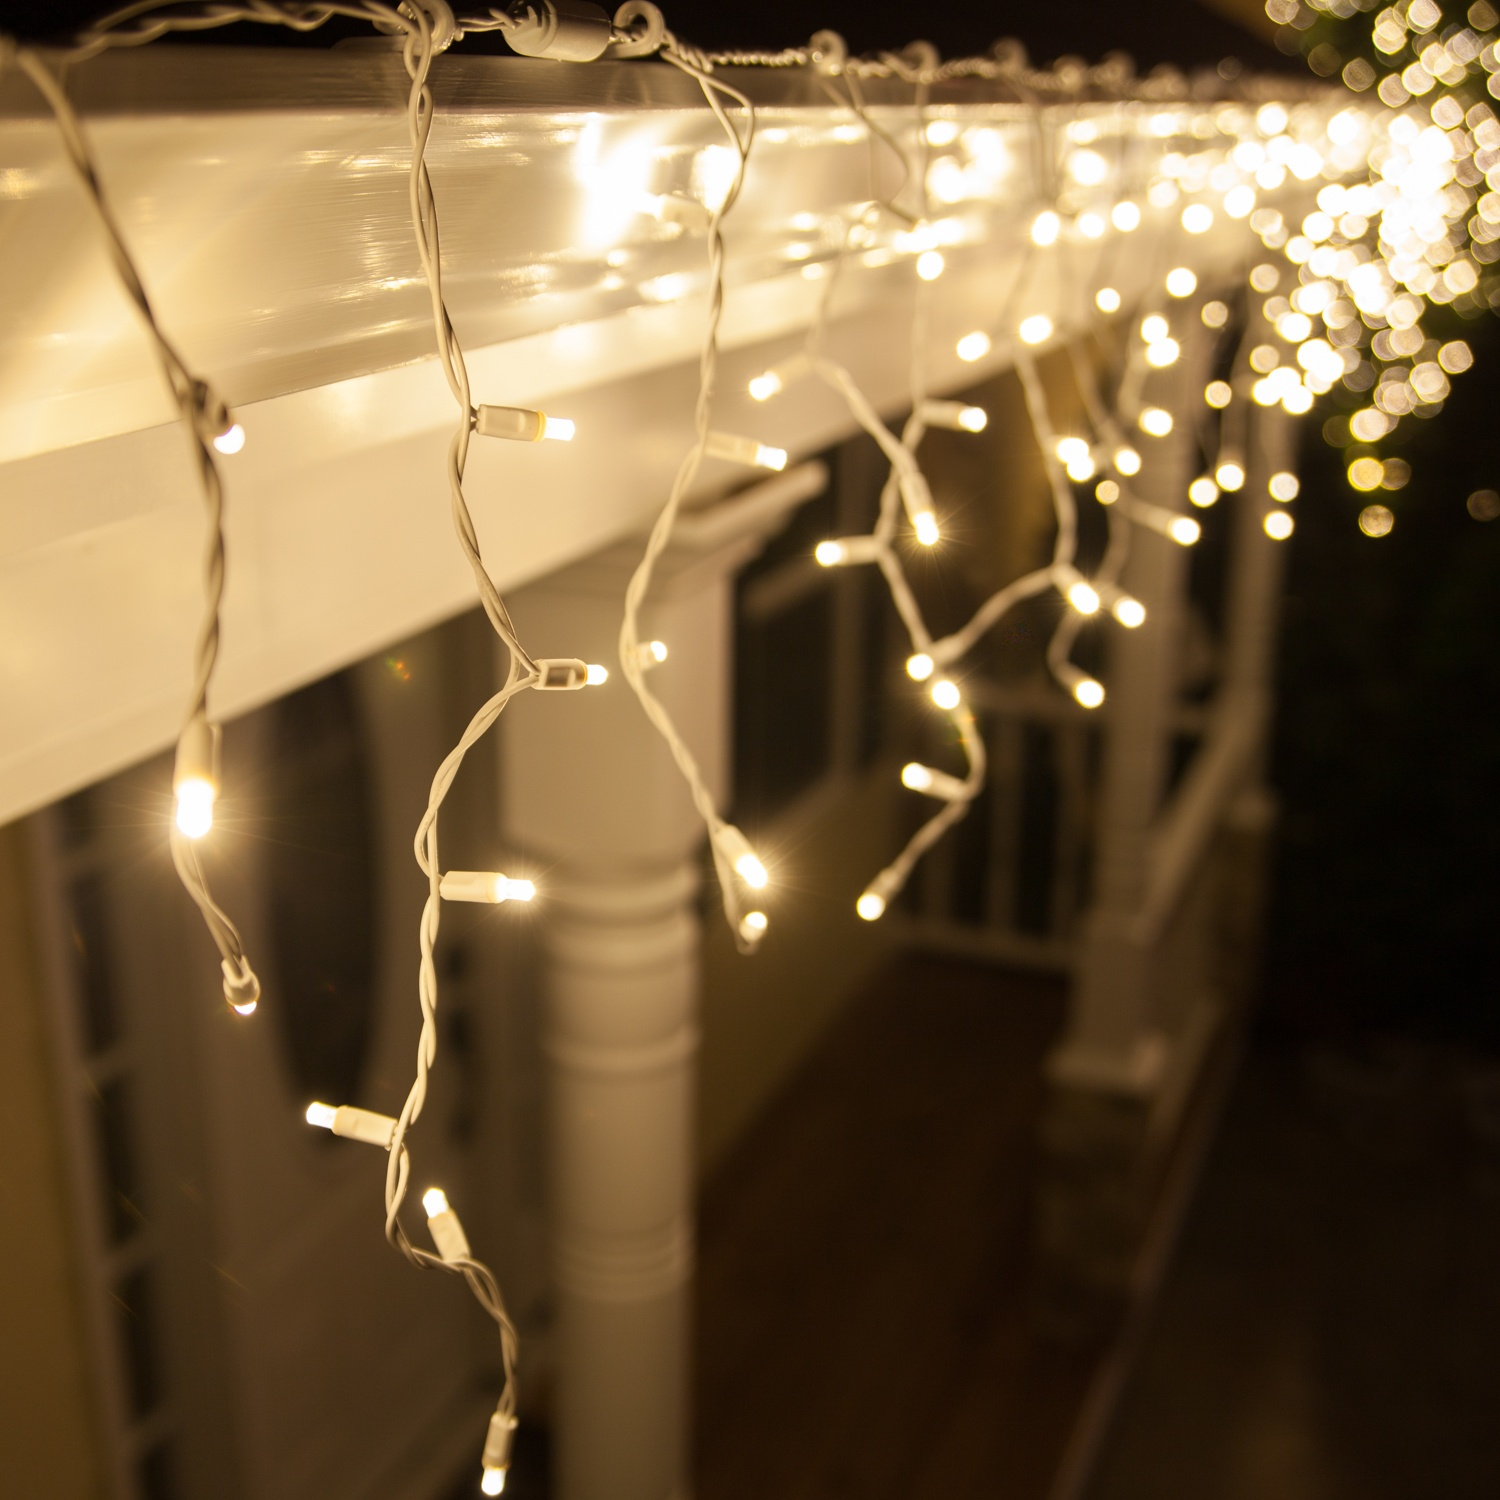 led christmas lights 70 5mm warm white twinkle led icicle lights - White Icicle Christmas Lights